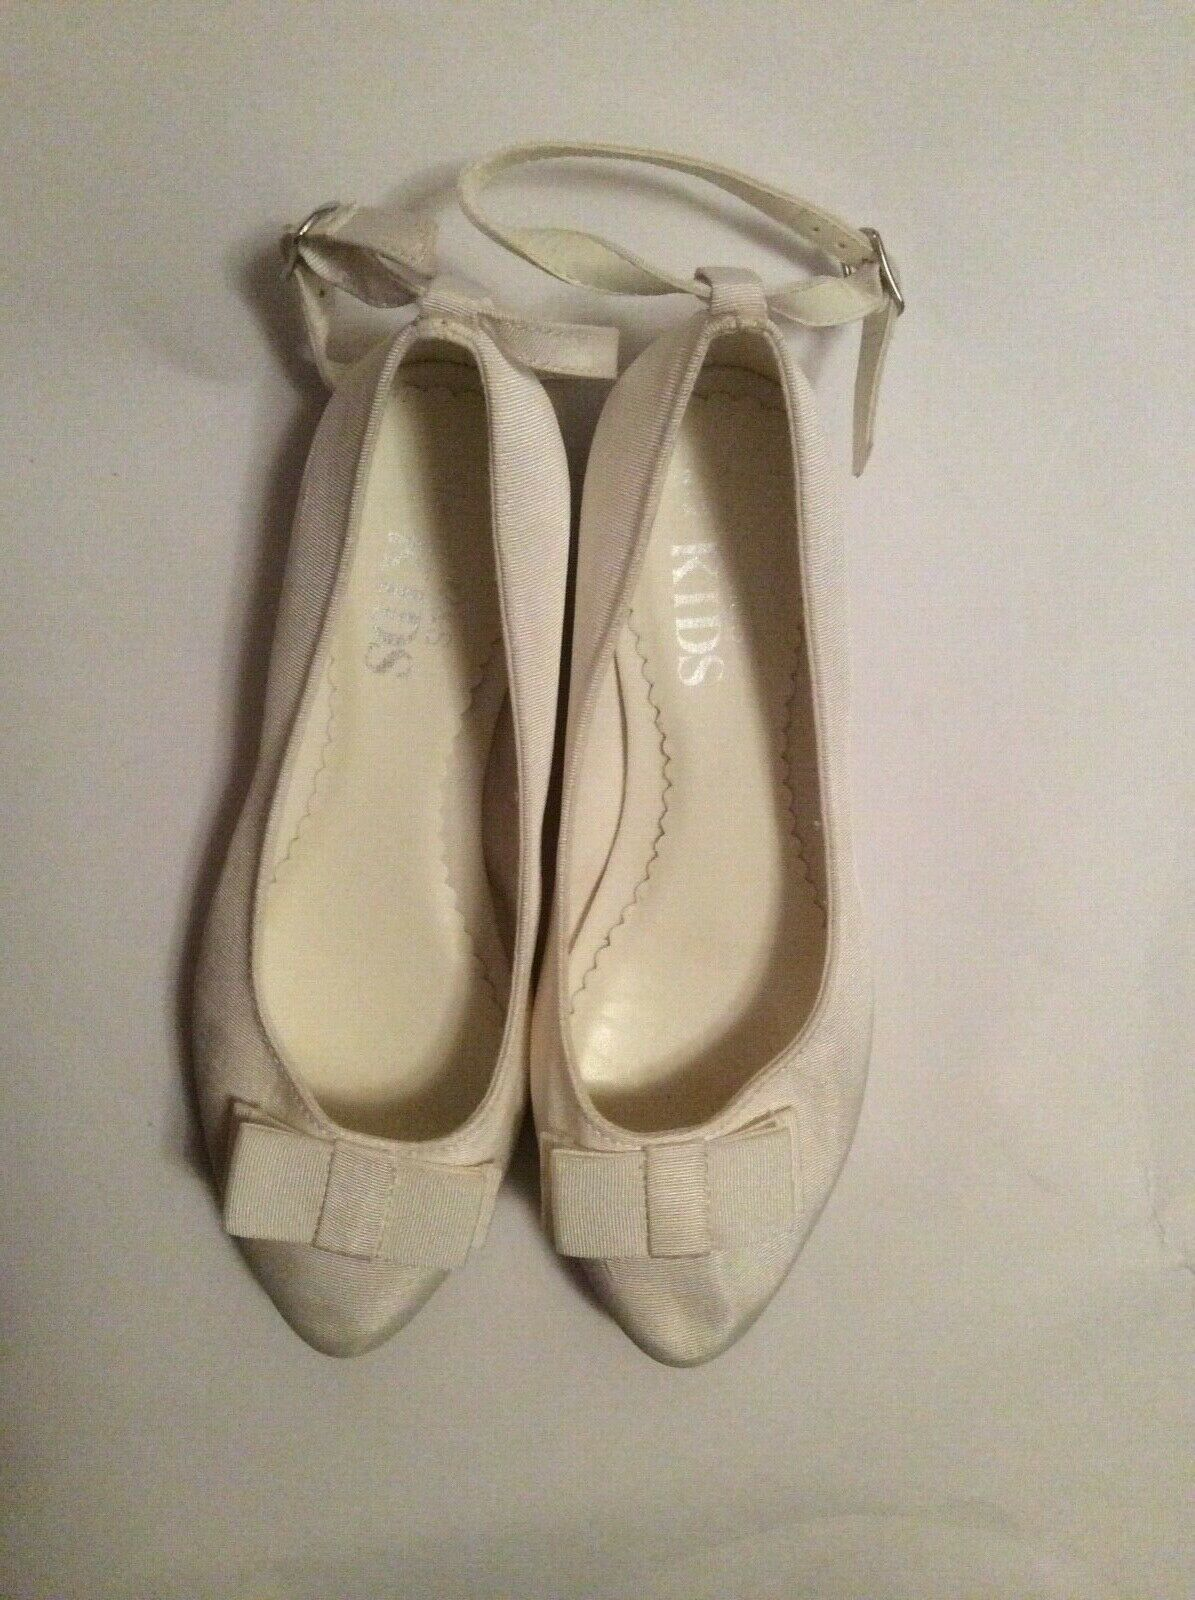 Brand new M&S kids ivory occasion shoes size 4